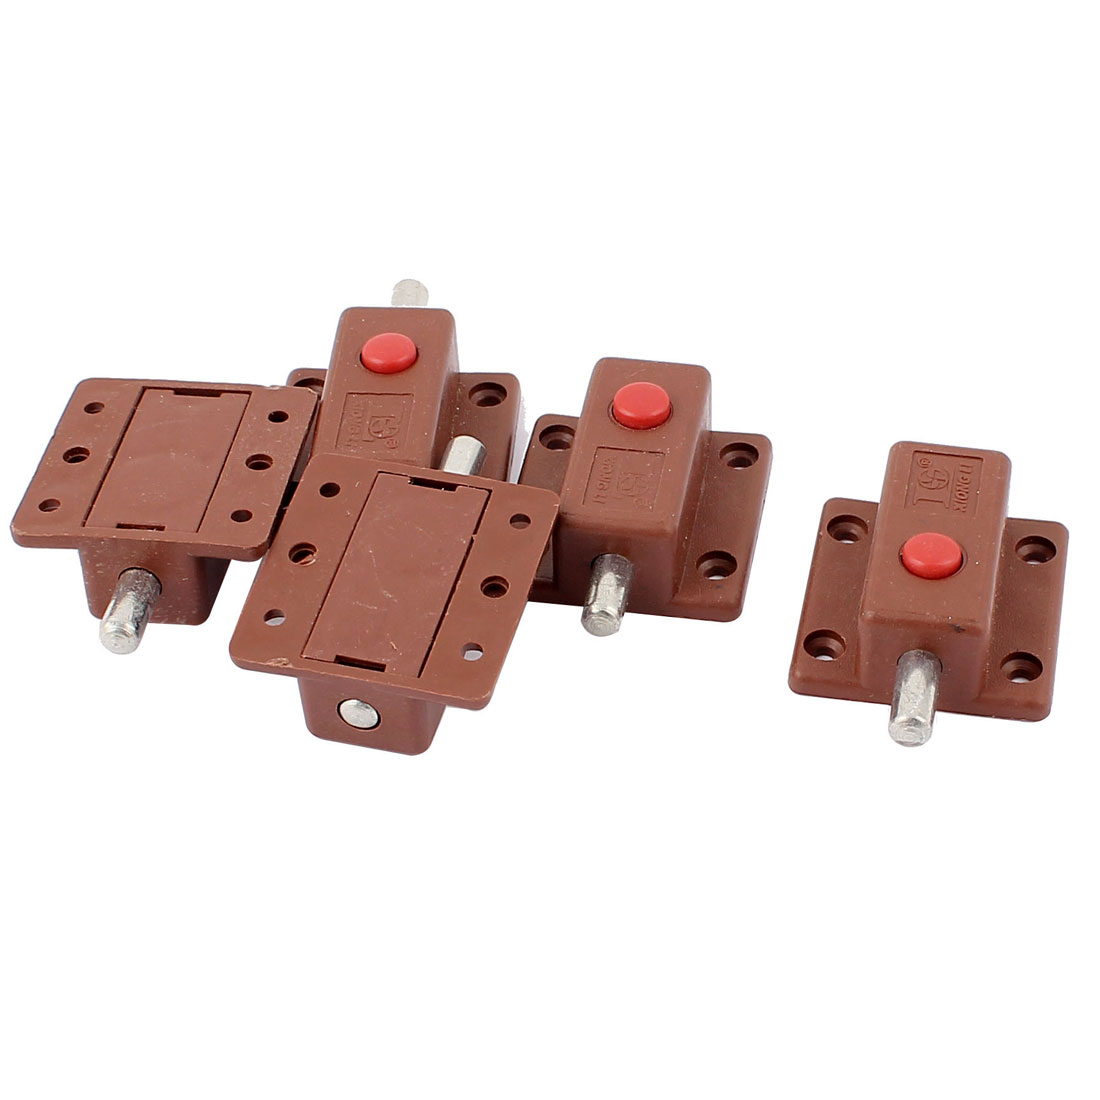 Button Control Cupboard Door Latch Lock Automatic Barrel Bolt Brown 5pcs